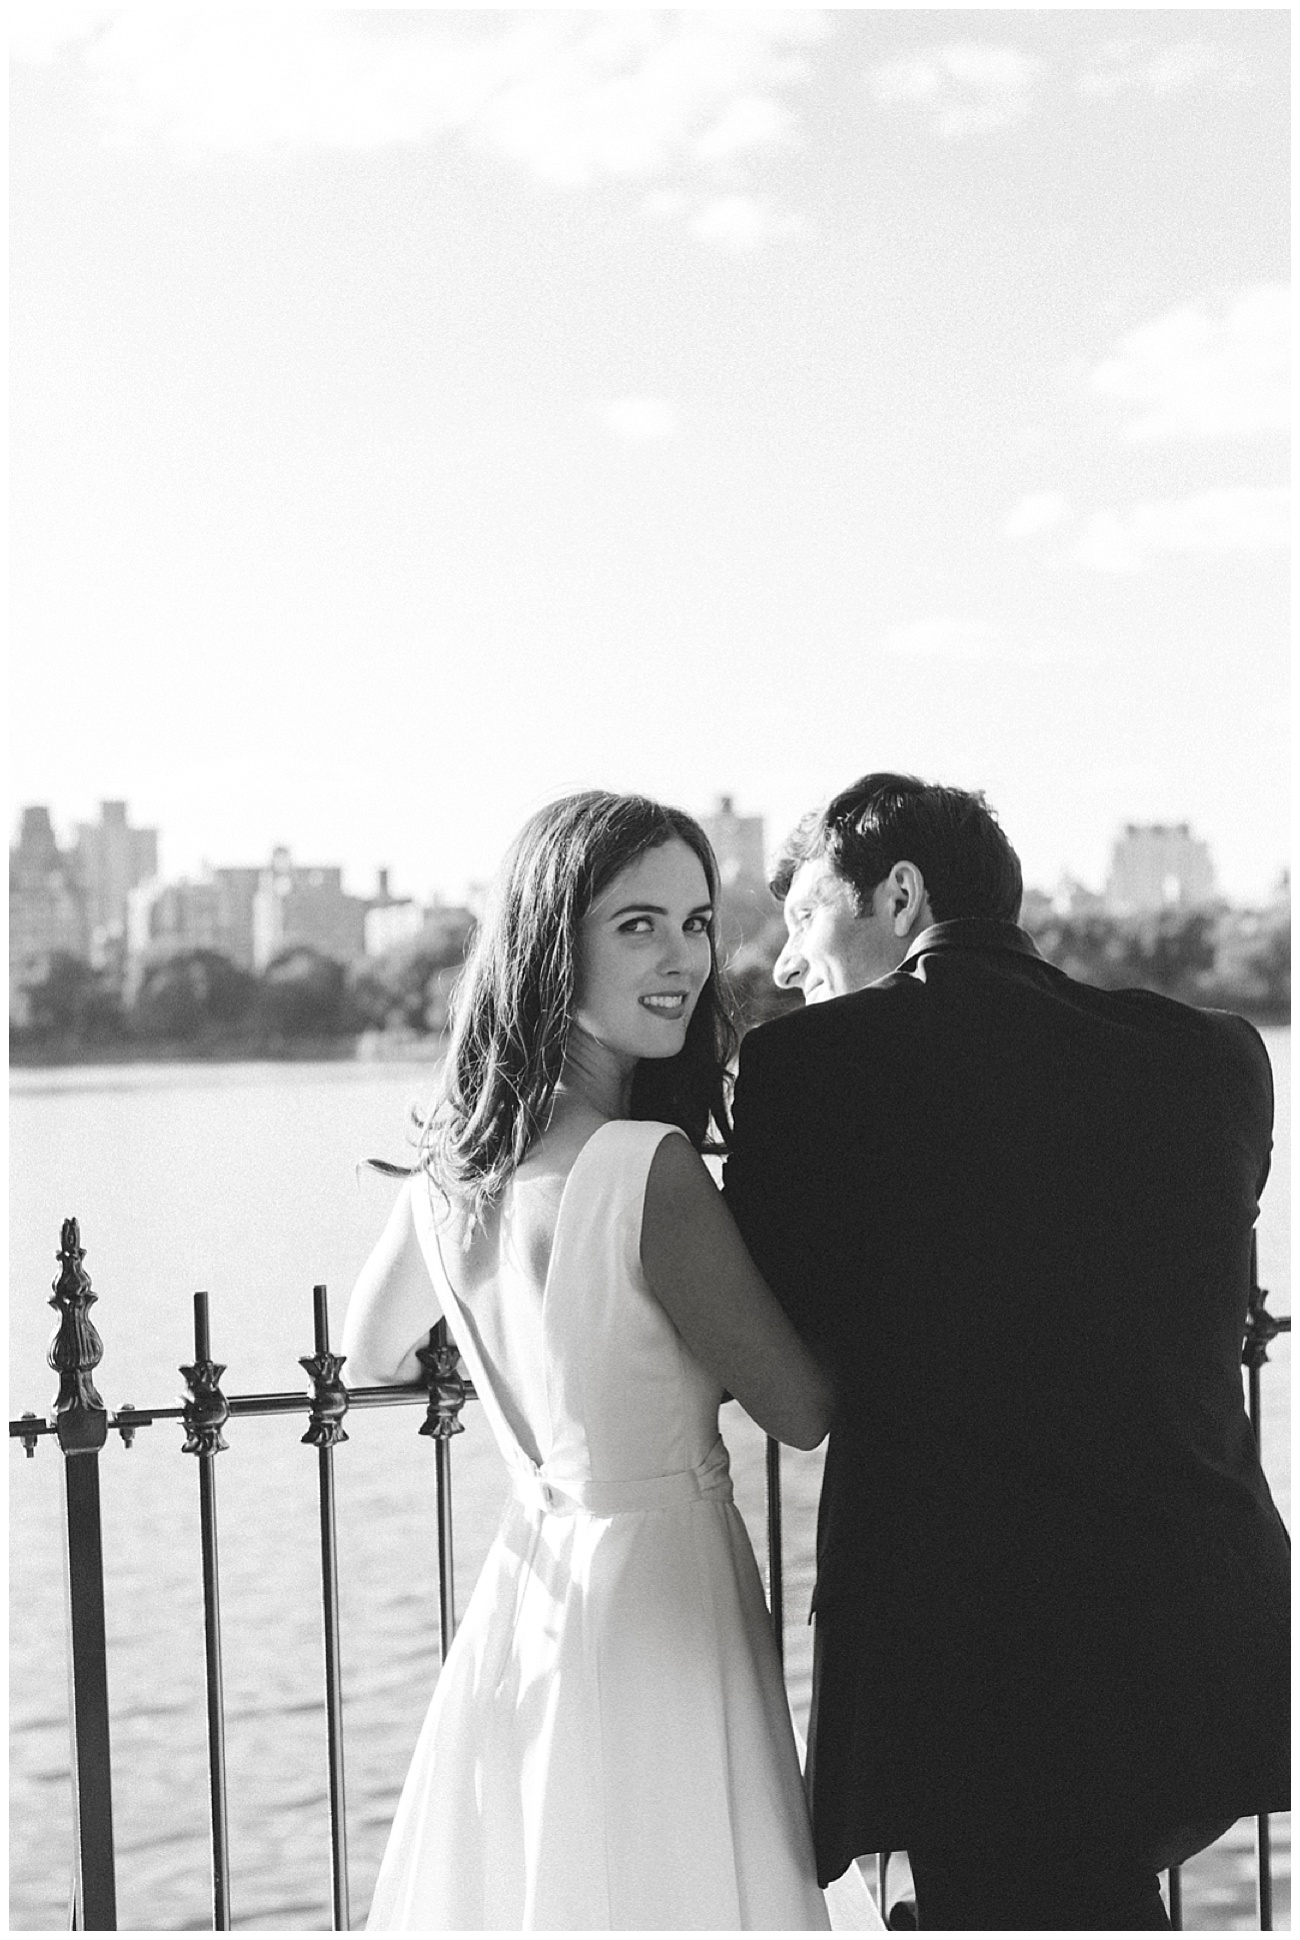 Christine Ted NYC Elopement Wedding_0030